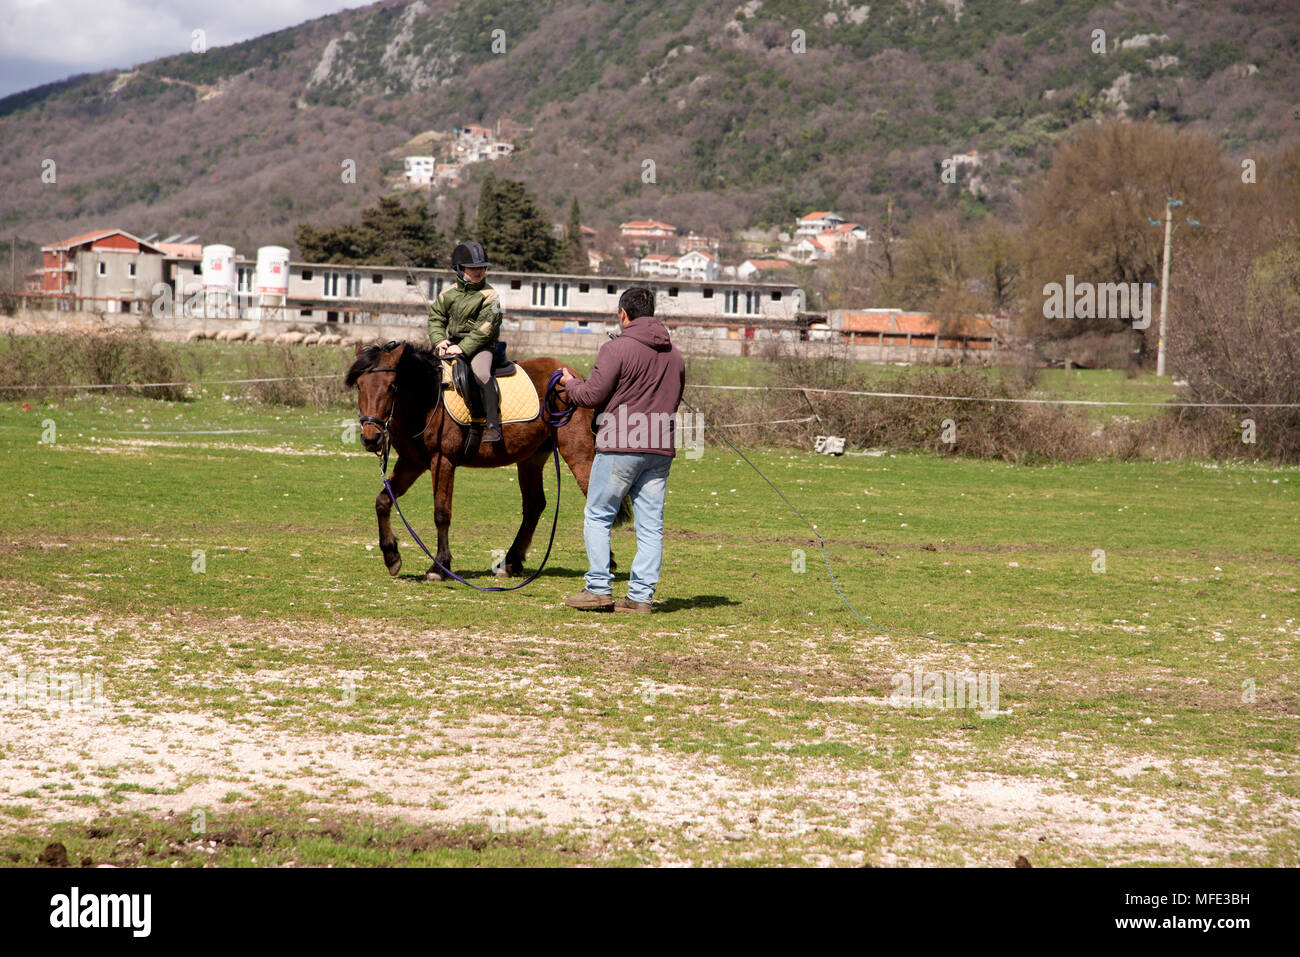 the first exercise on a horse . the boy meets equestrian sports in the equestrian club - Stock Image